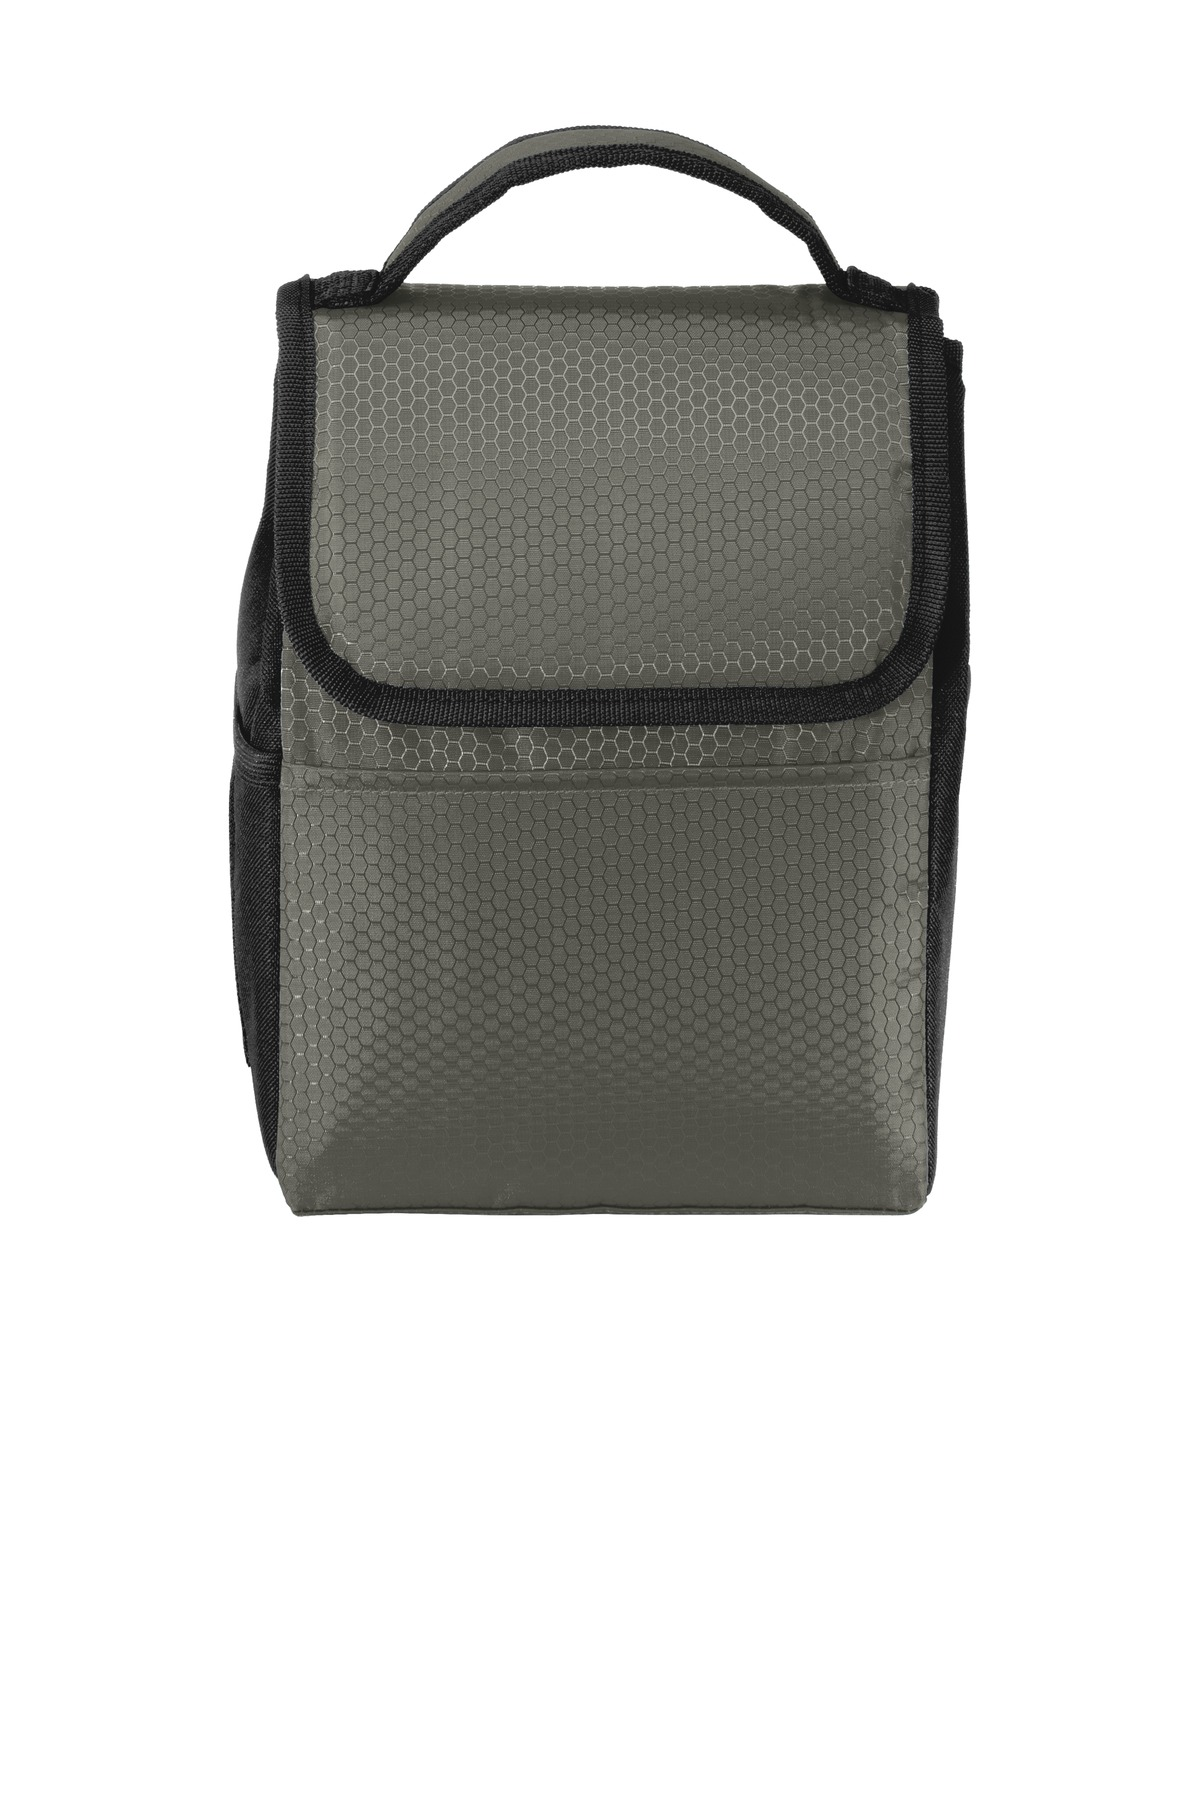 Port Authority ®  Lunch Bag Cooler. BG500 - Grey/ Black